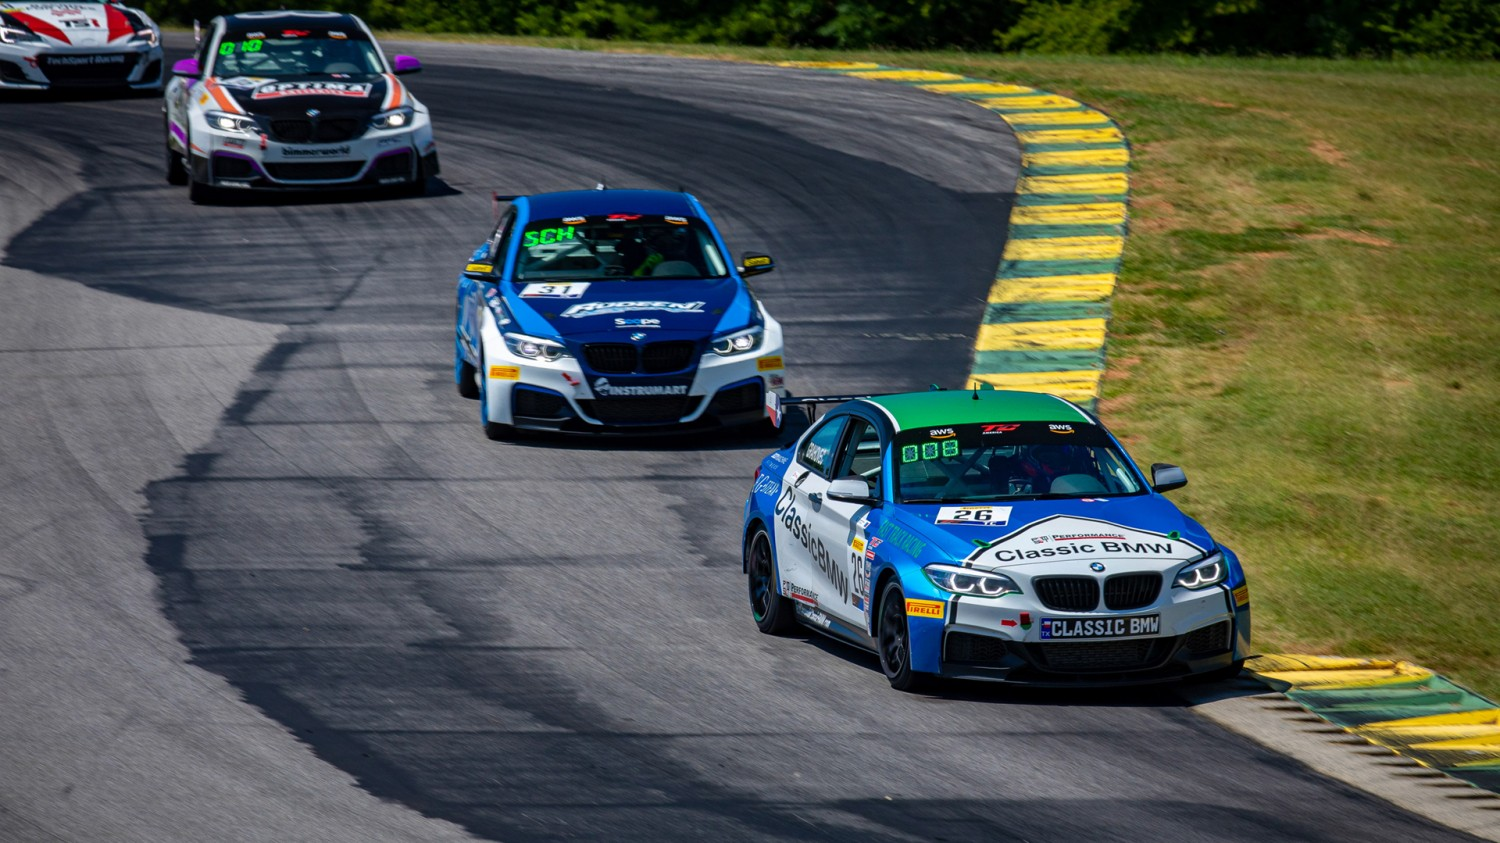 Fast Track Racing/Classic BMW Team Scores GT4 SprintX, TC Wins  At VIR in SRO America Tripleheader Sports Car Competition